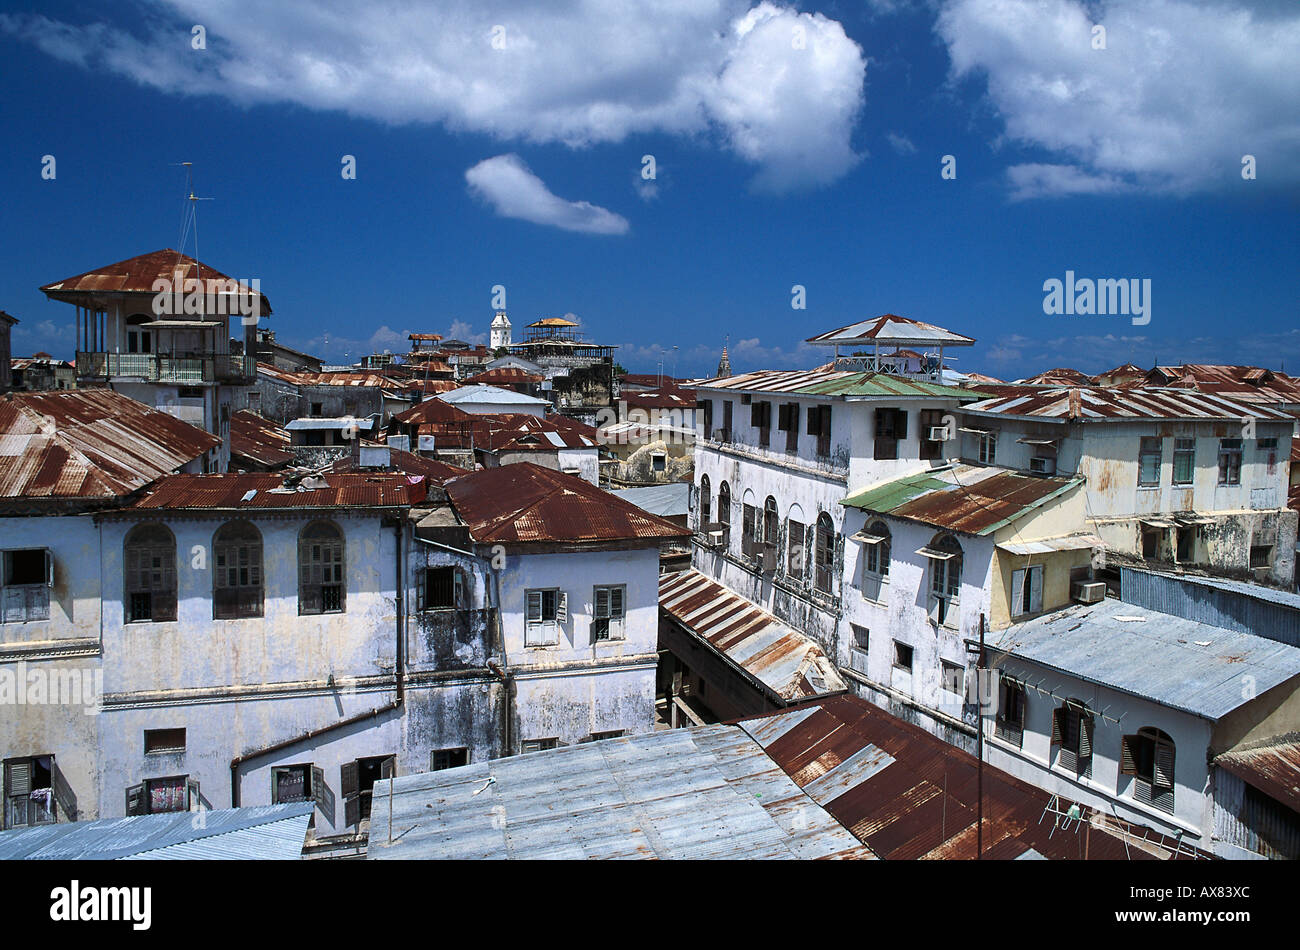 Stock Photo - The houses of the Old Town under blue sky, Zanzibar city ...